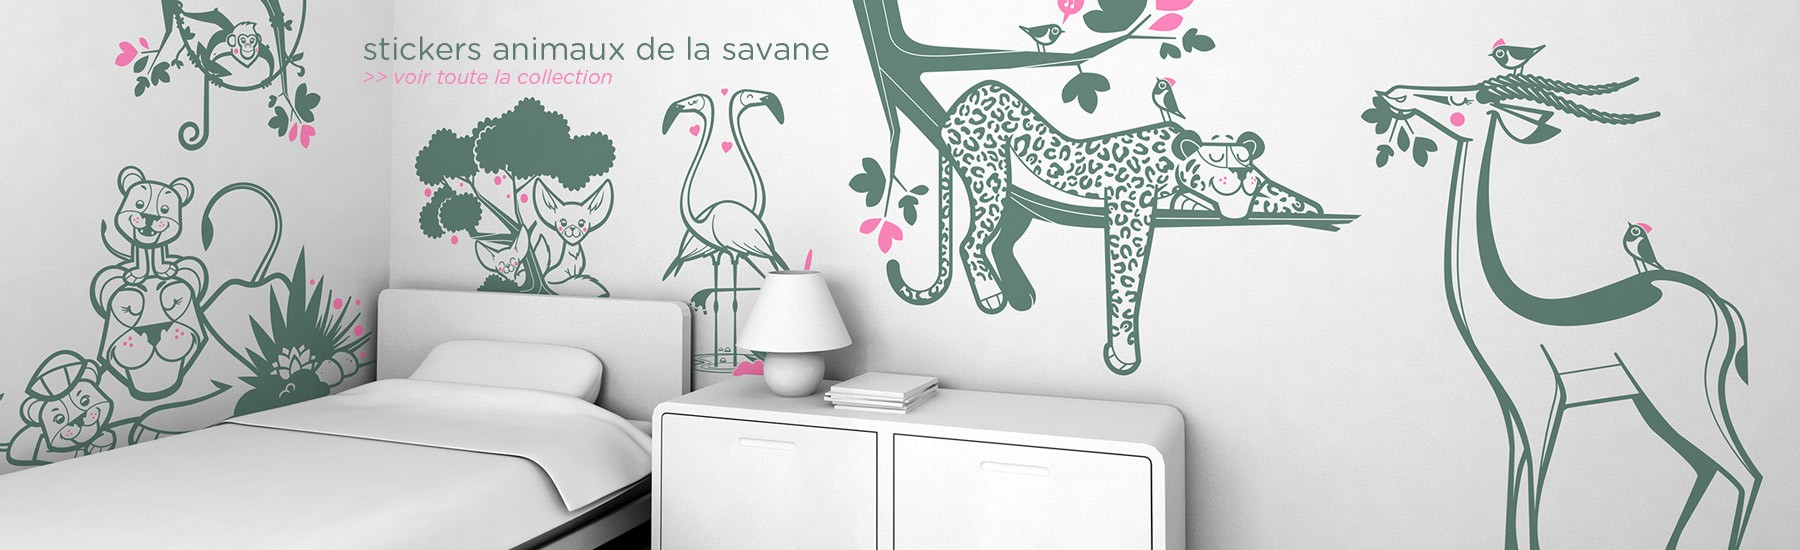 stickers-animaux-savane